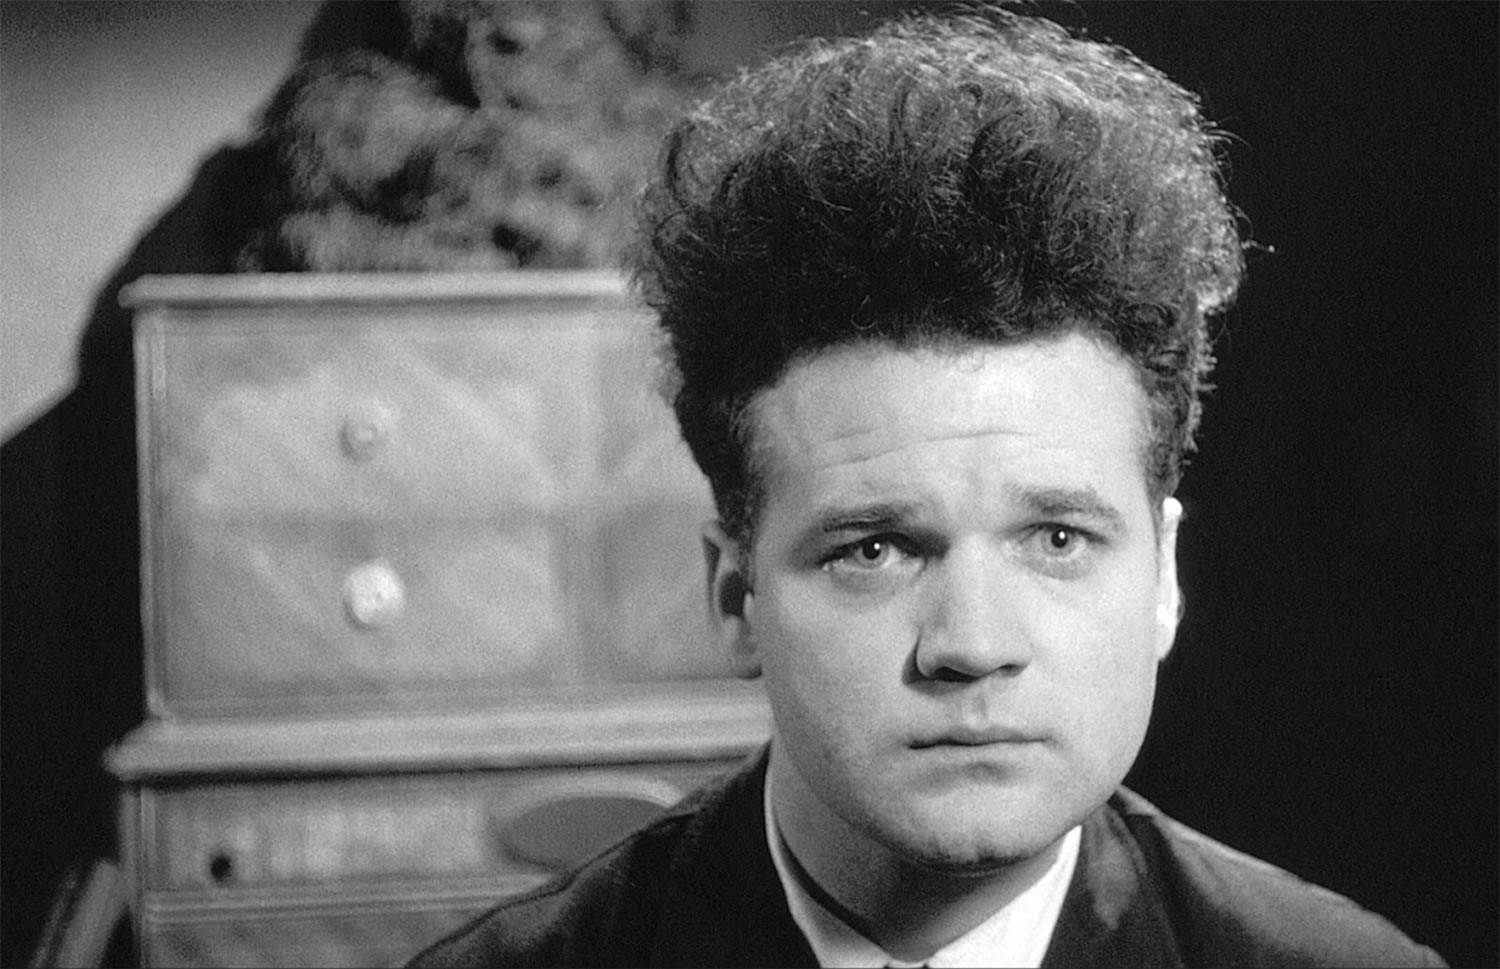 film still from eraserhead 1977